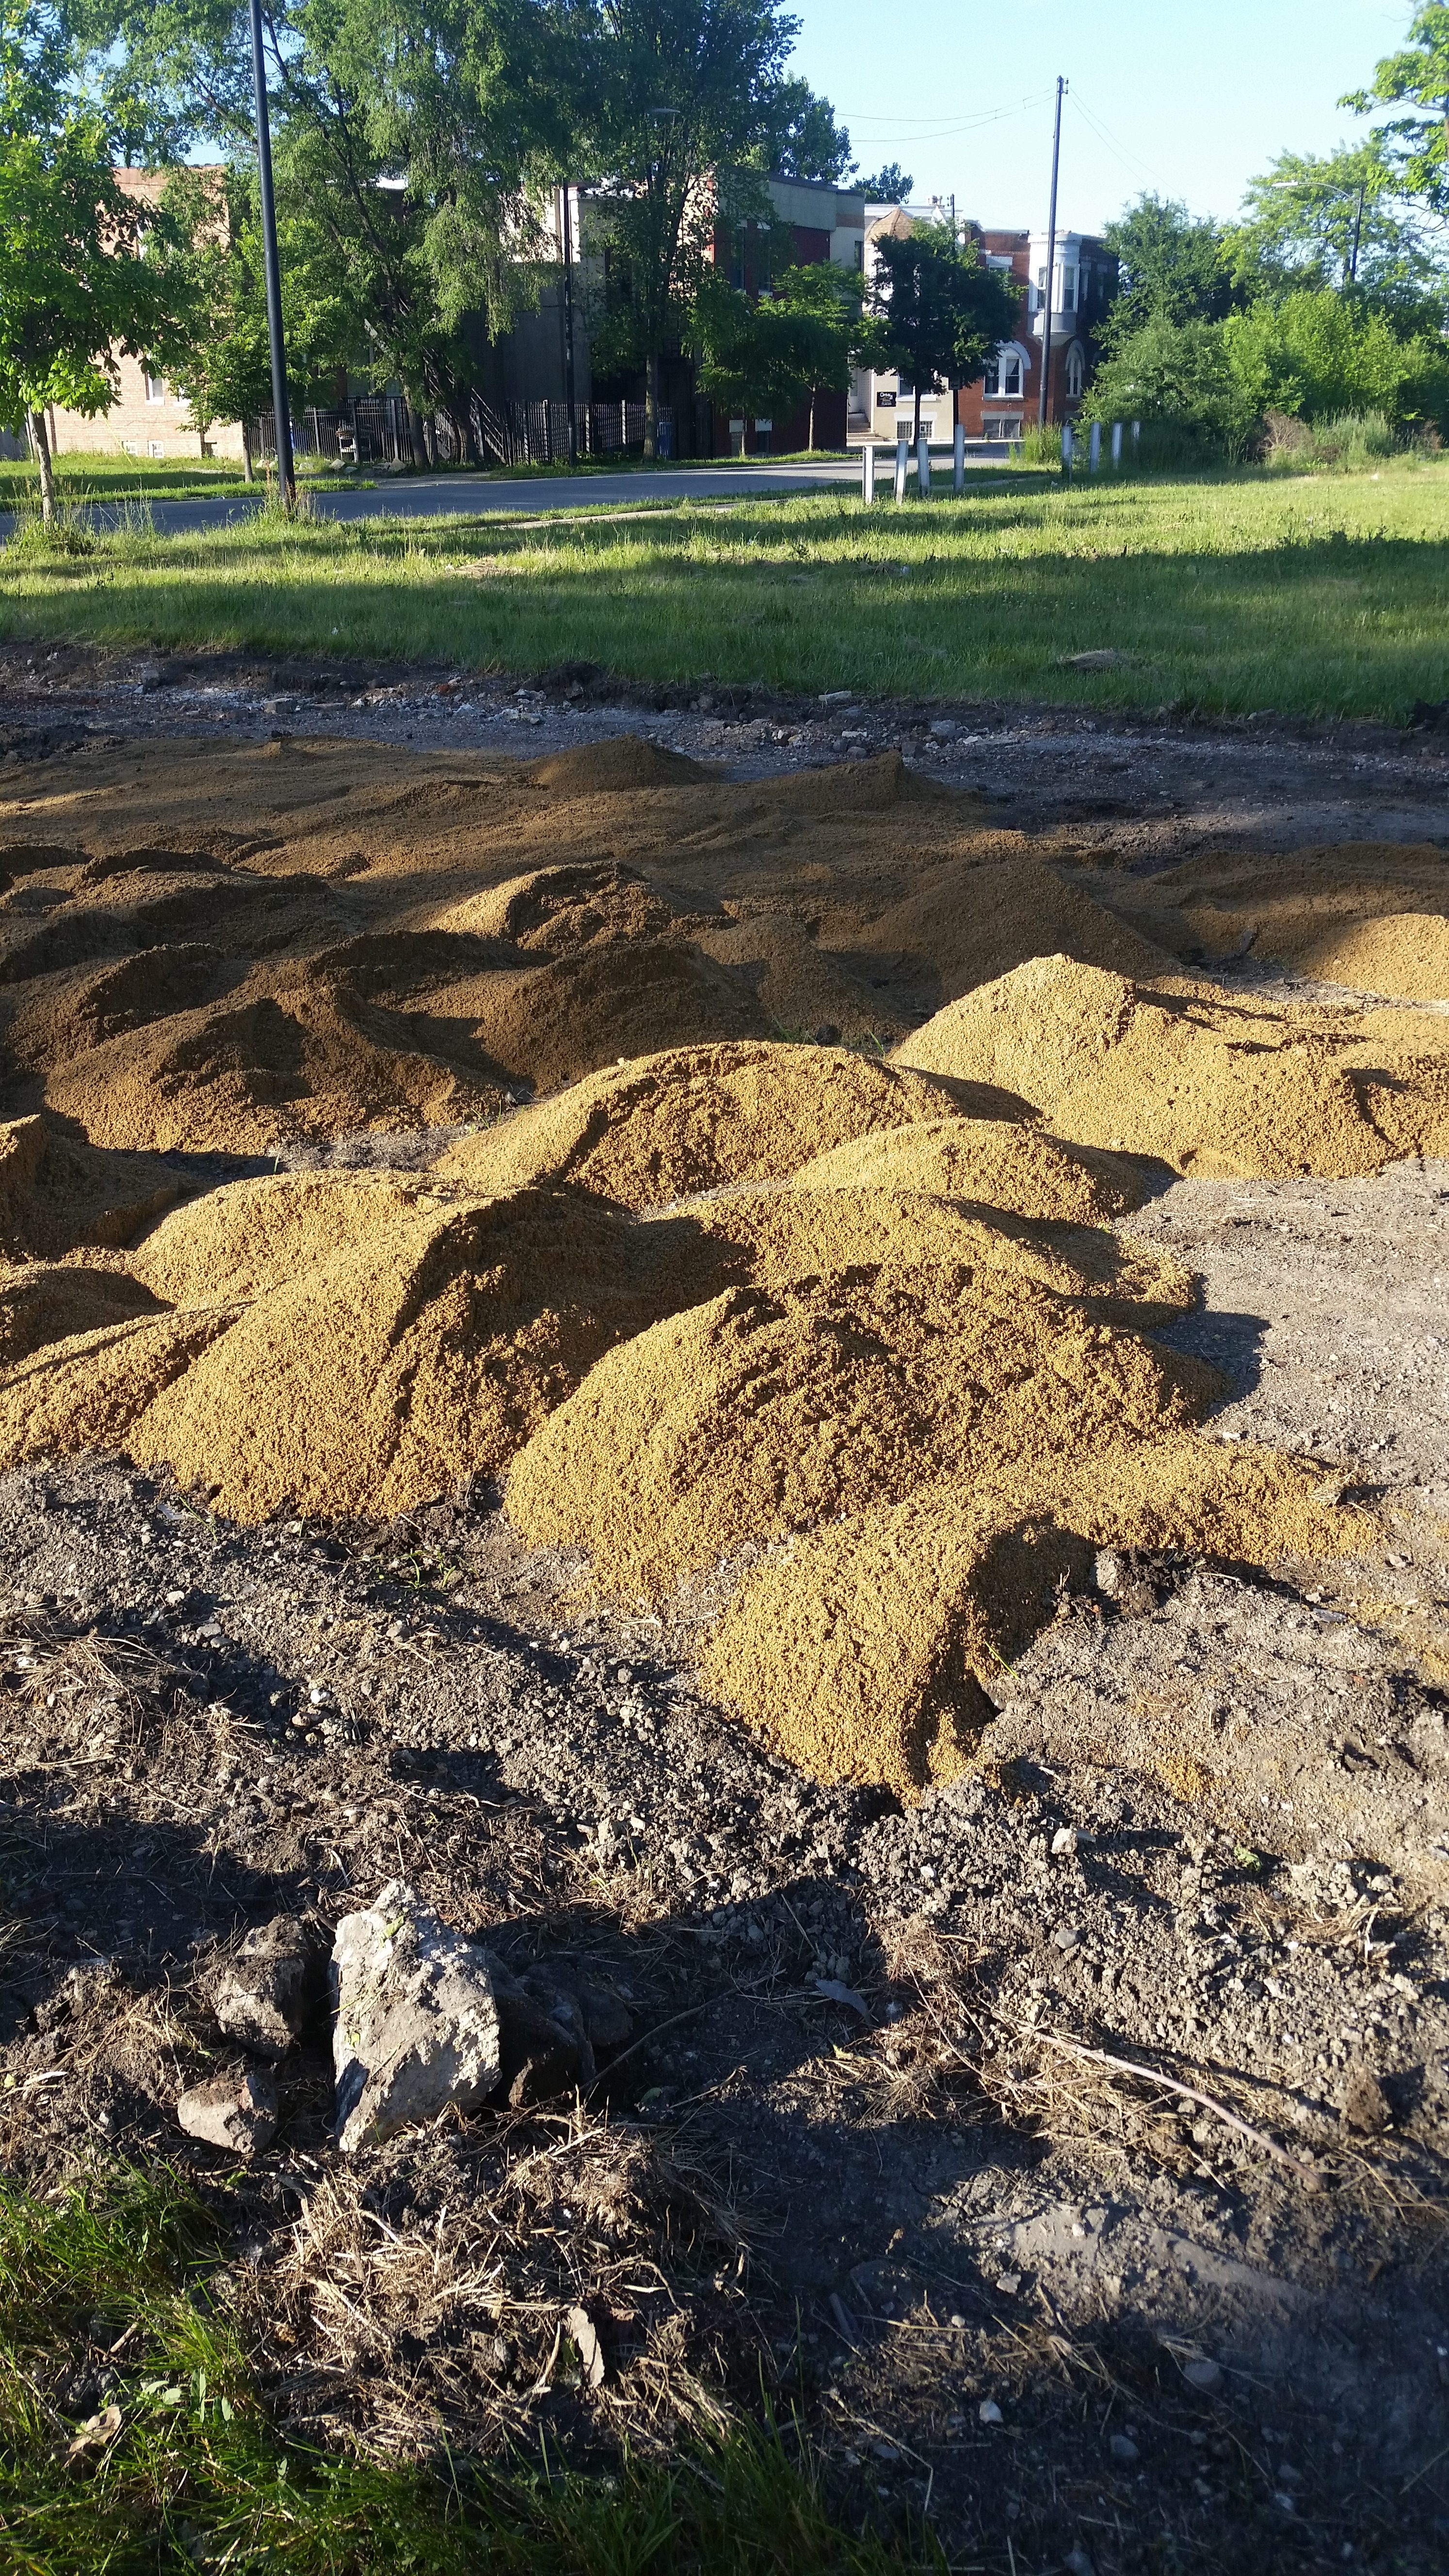 40 tons of sand were used in outdoor bed